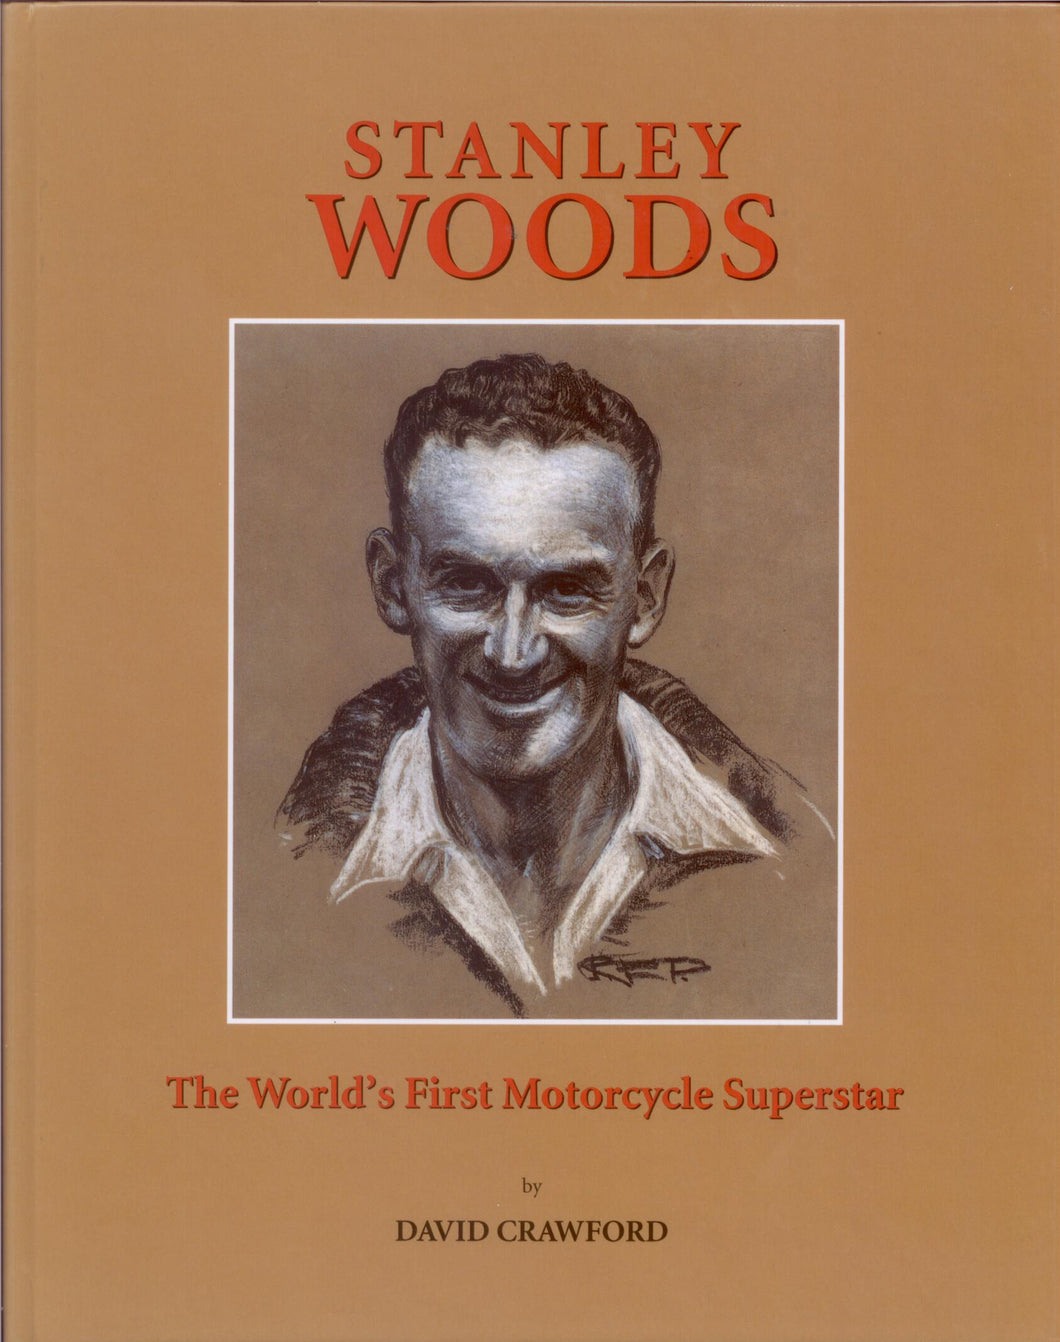 Stanley Woods: The World's First Motorcycle Superstar